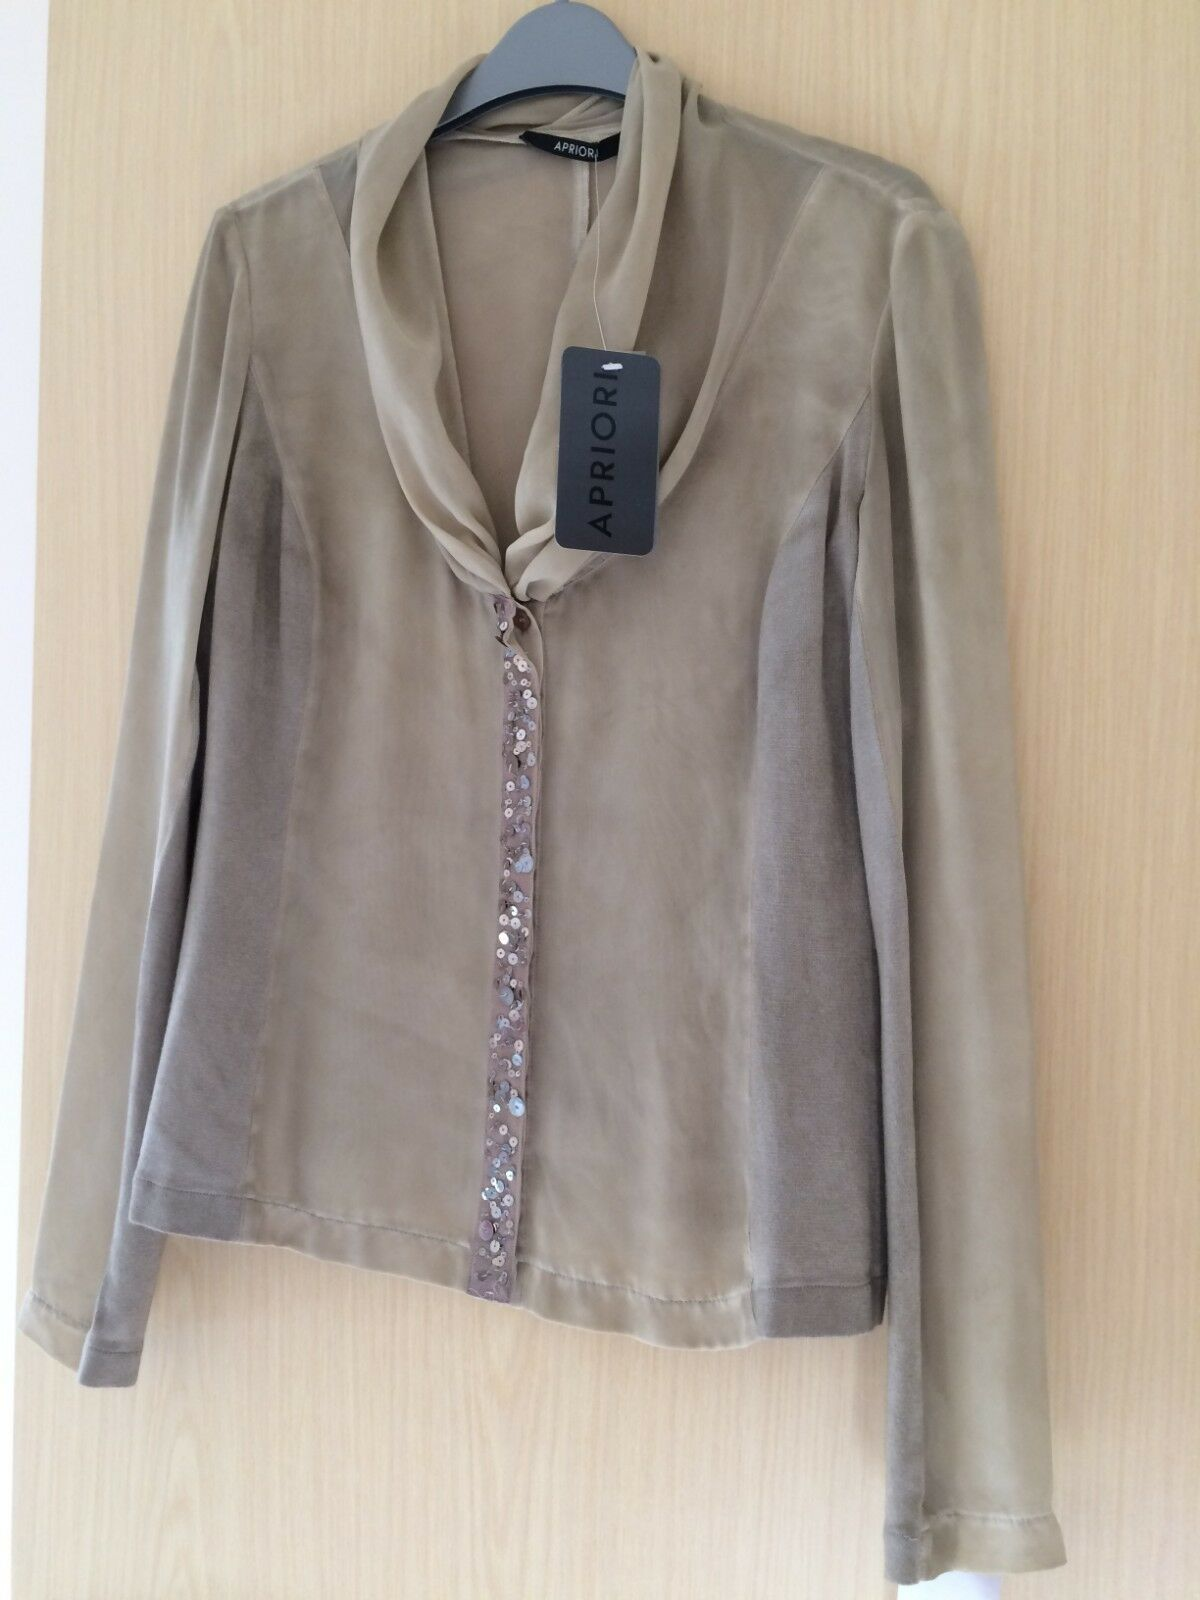 Apriori - Beige hand-crafted beautiful blouse